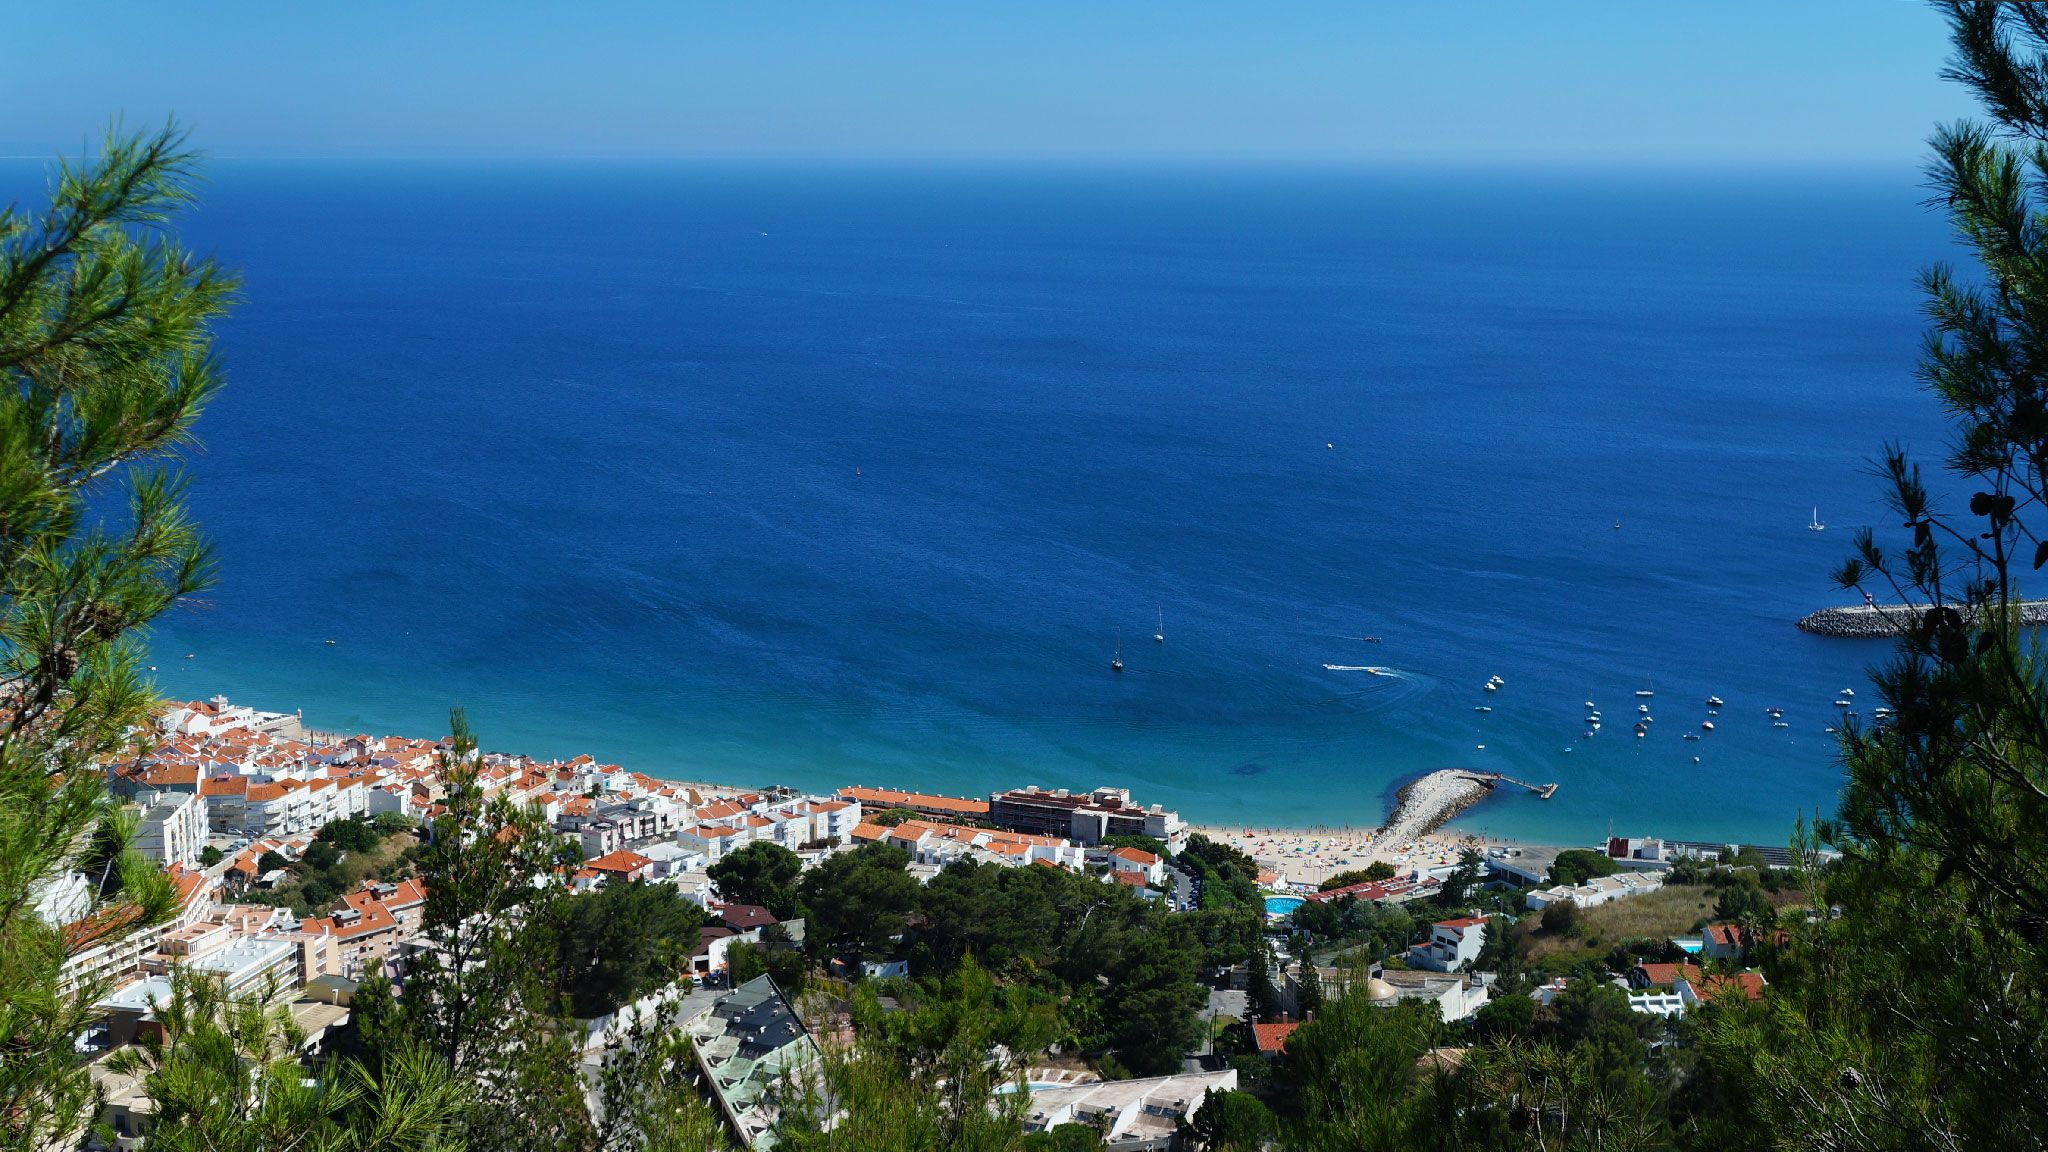 A picturesque fishing town, surrounded by the luxurious Natural Park Arrábida. It is a popular summer resort and one of the best spots around Lisbon for scuba diving and snorkelling. #Portugal #Europe #Summer #Holiday